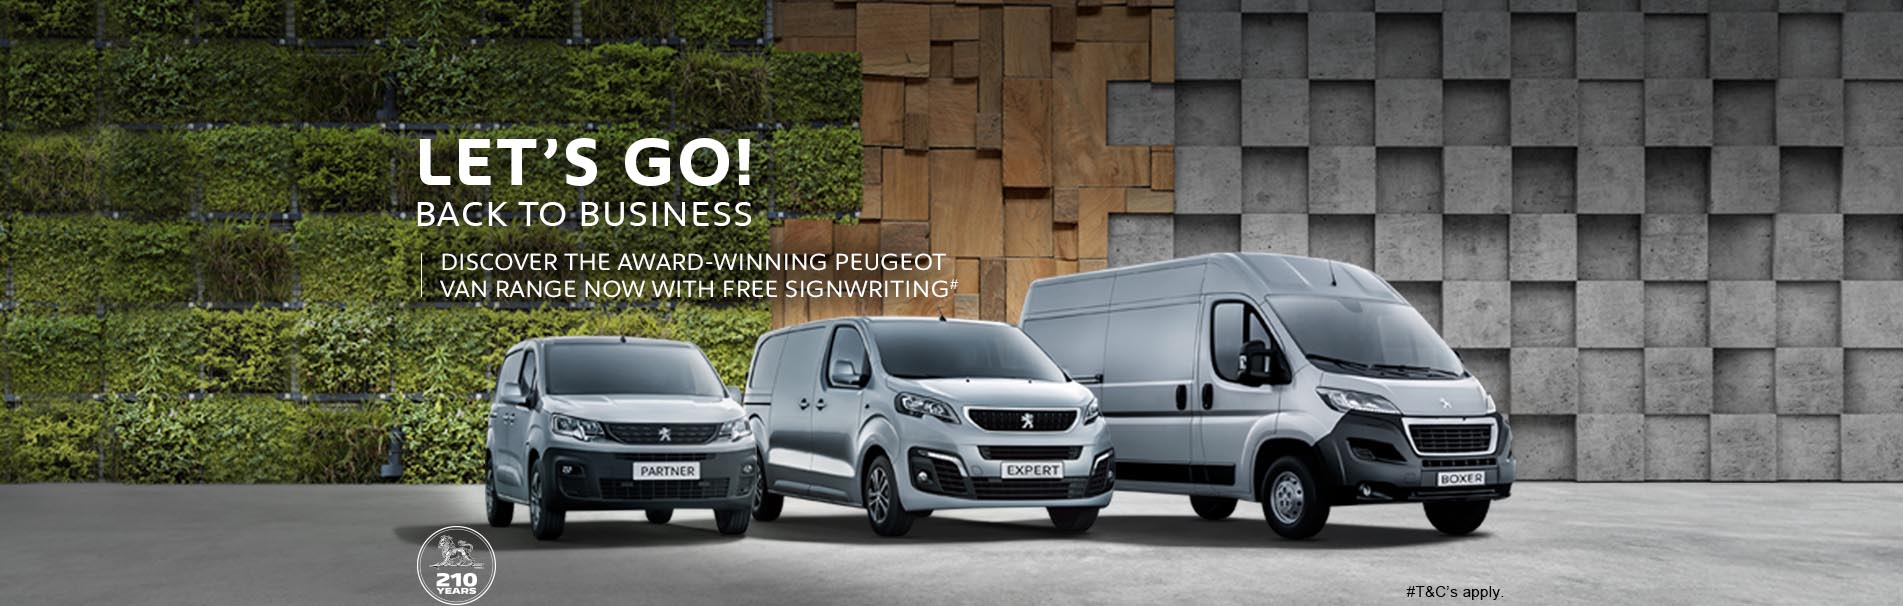 free-signwriting-on-new-peugeot-vans-sli2